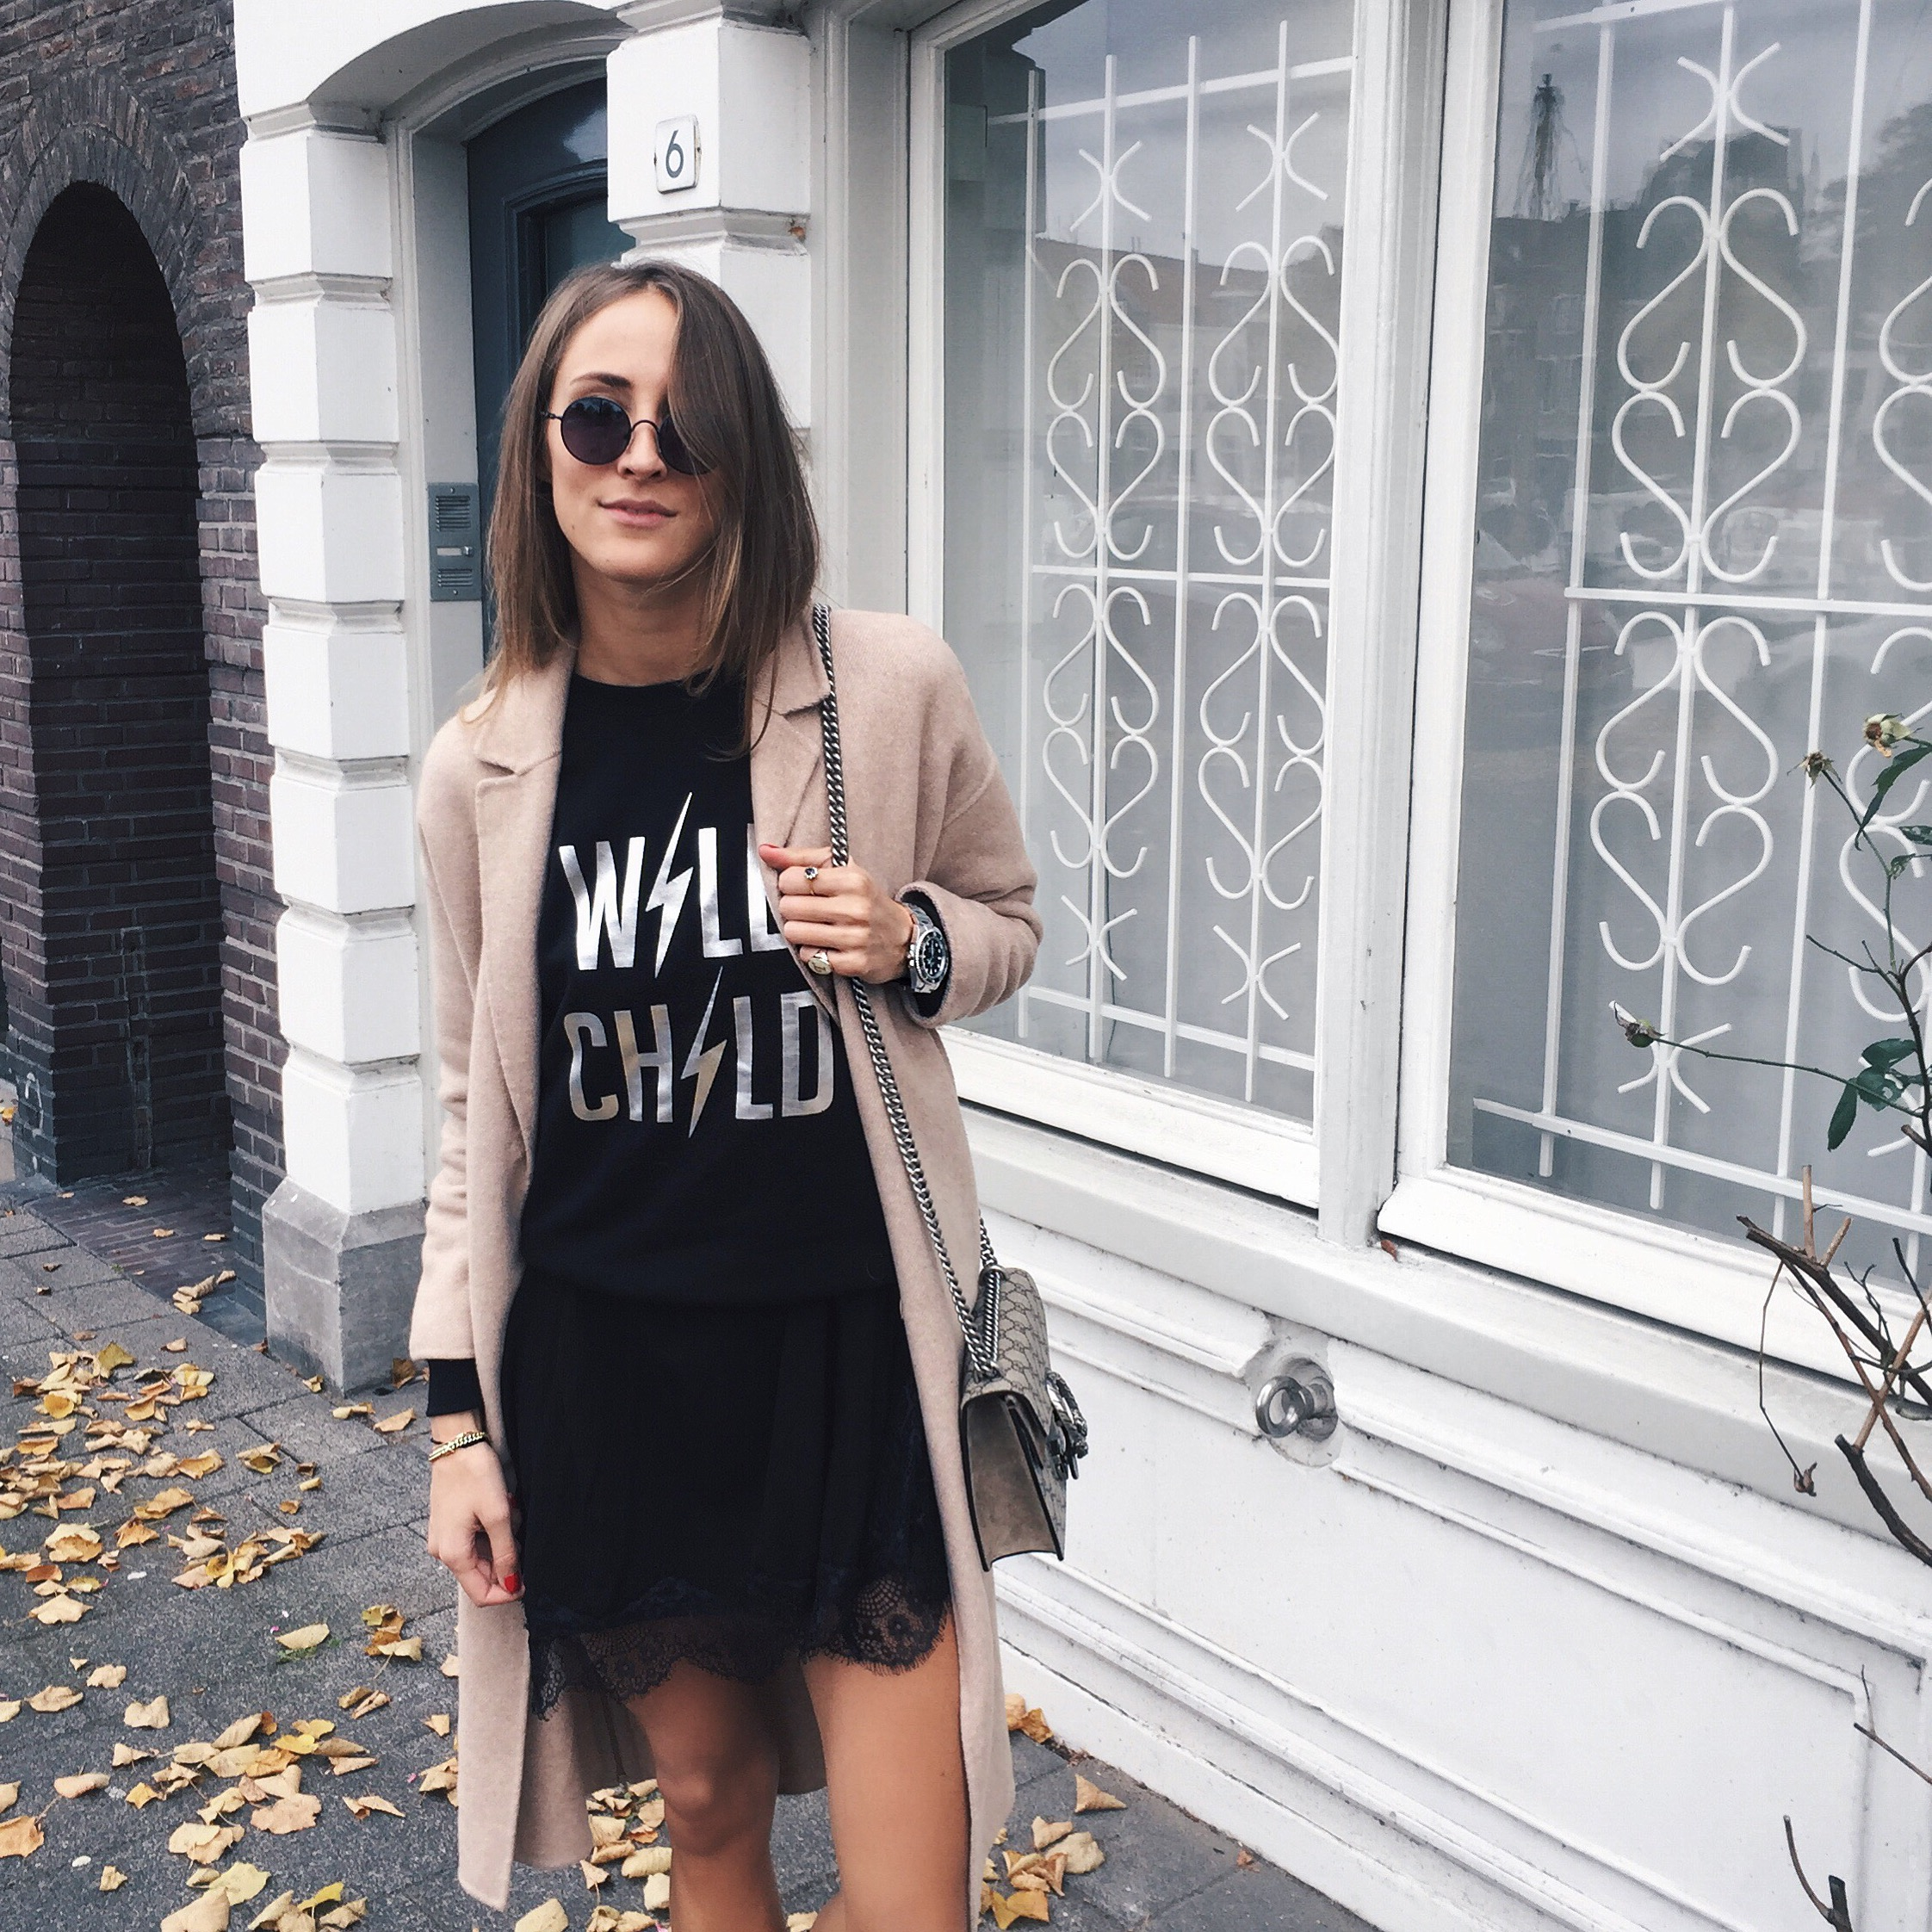 linda_tsetis_worlds_affair_colourful_rebel_sweater_style_ootd